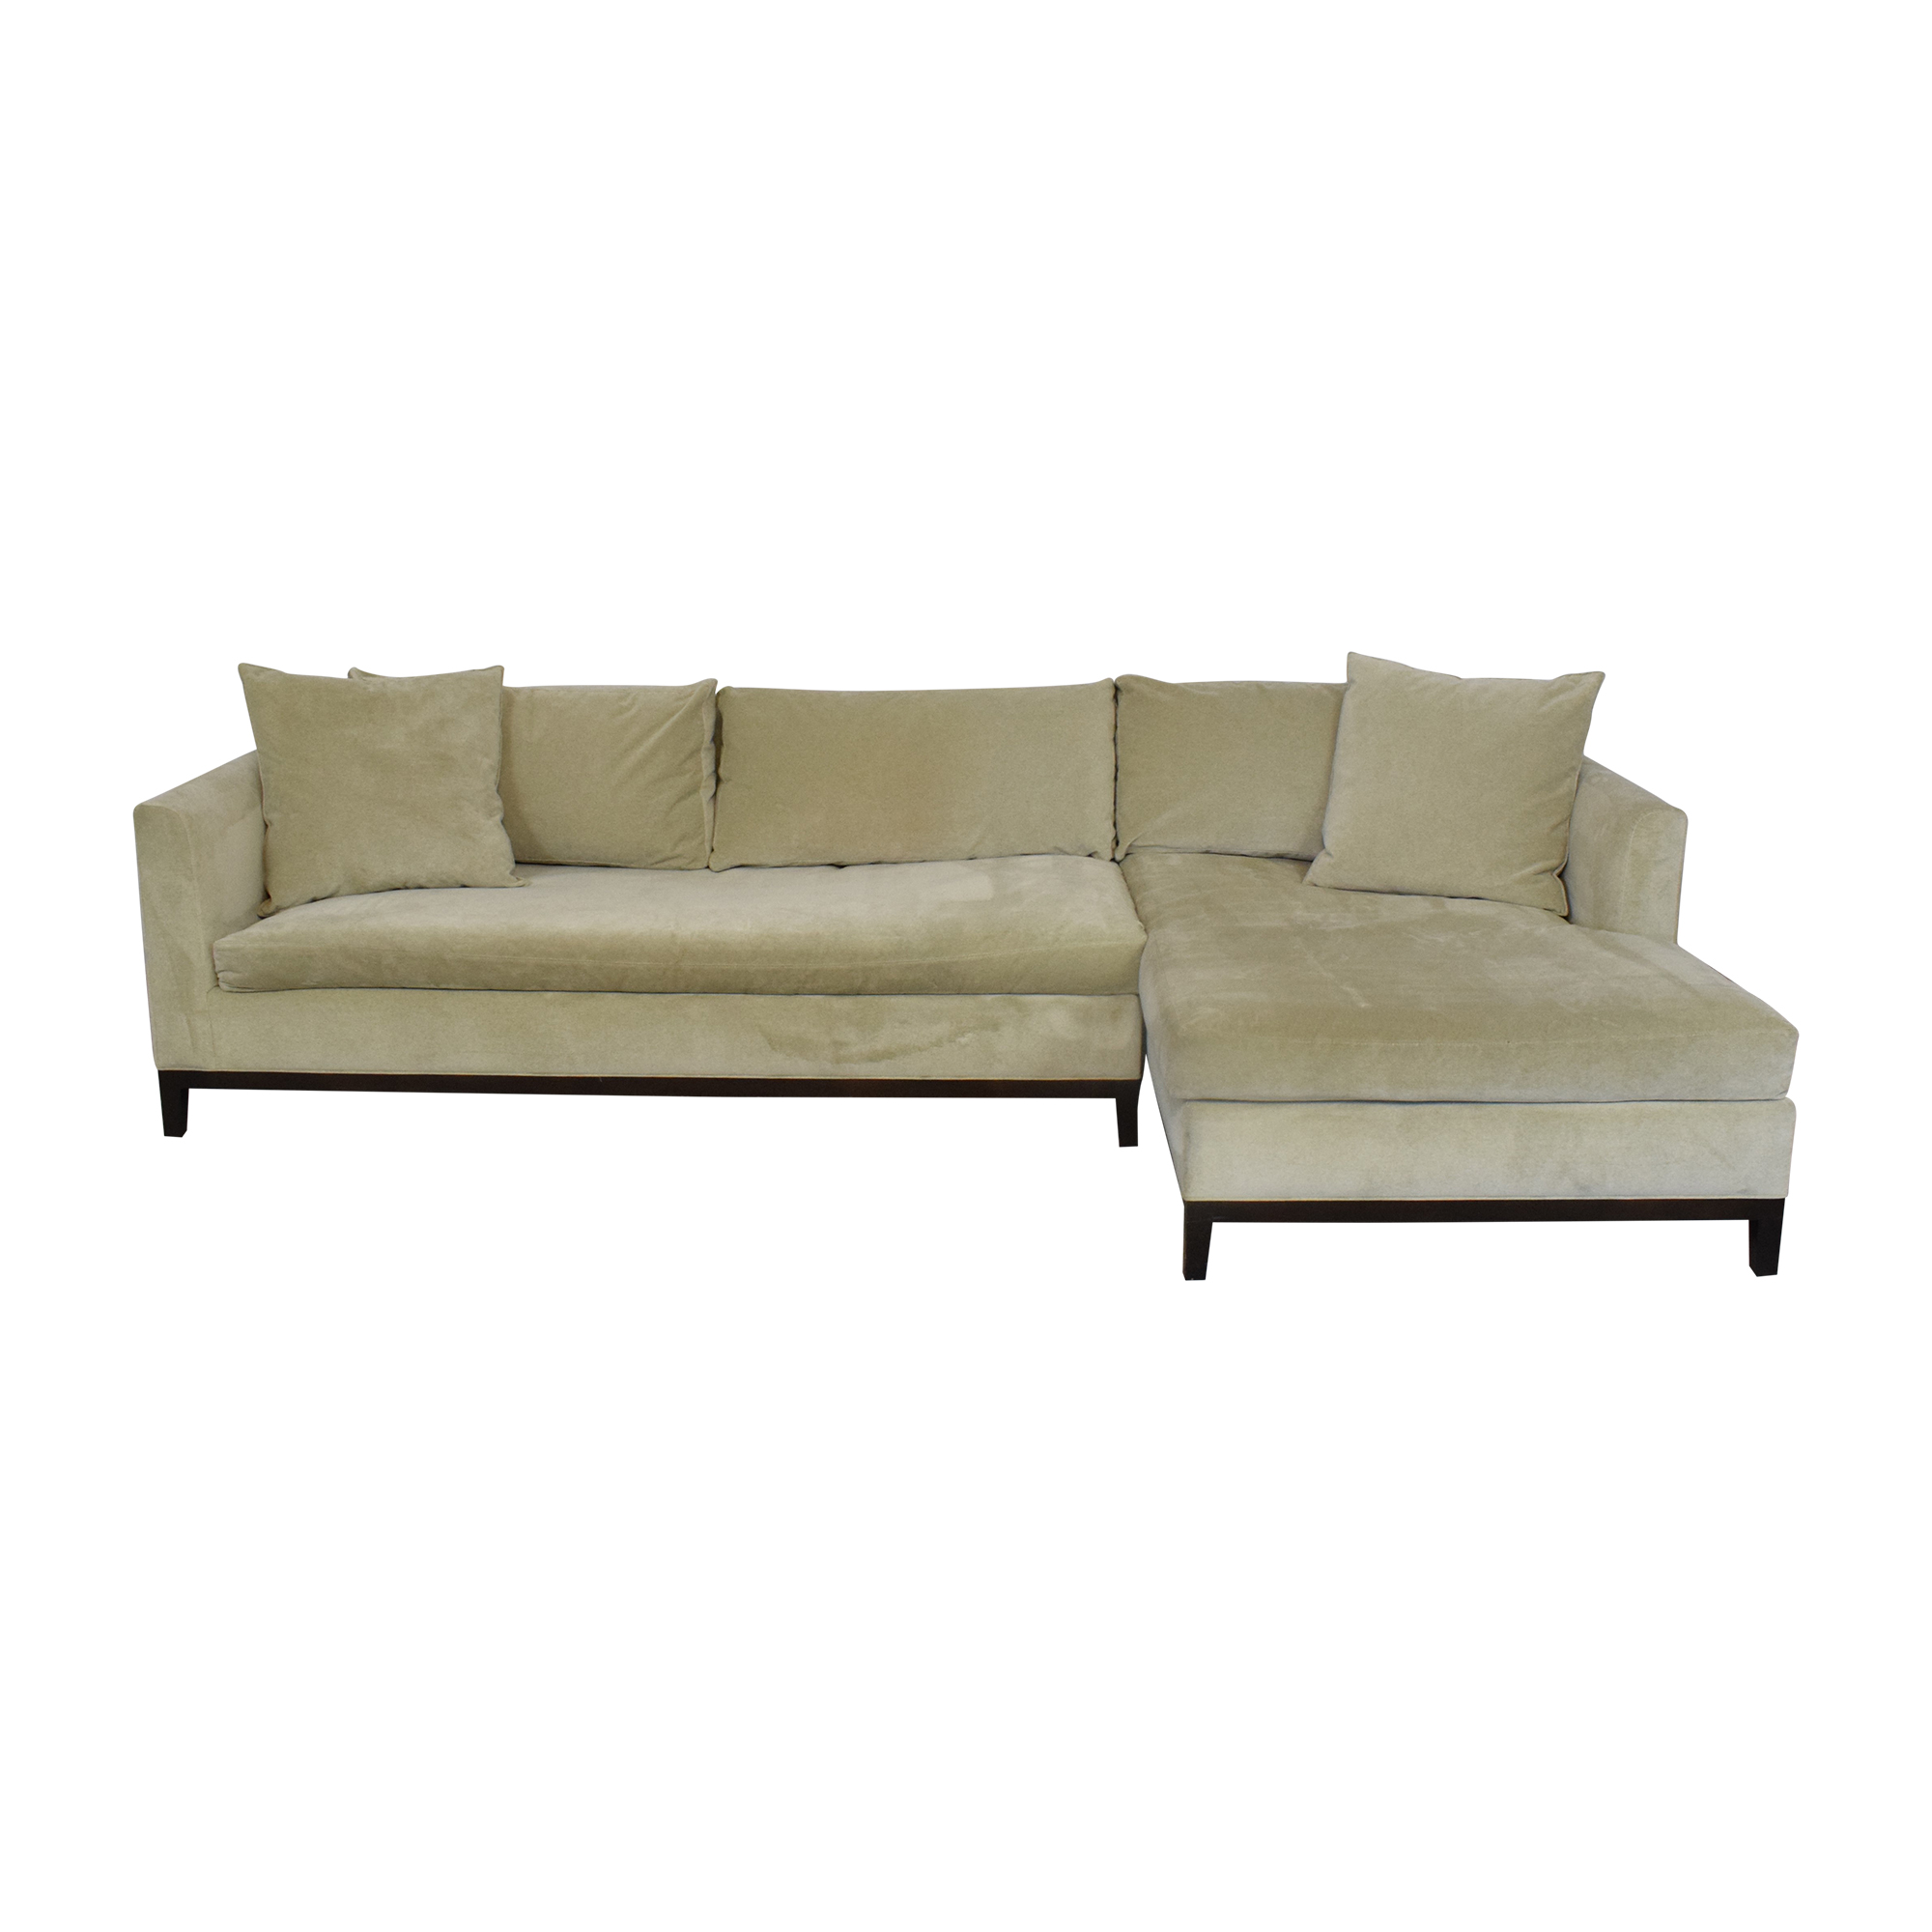 Cisco Brothers Cisco Brothers Tristan Sectional Sofa nyc